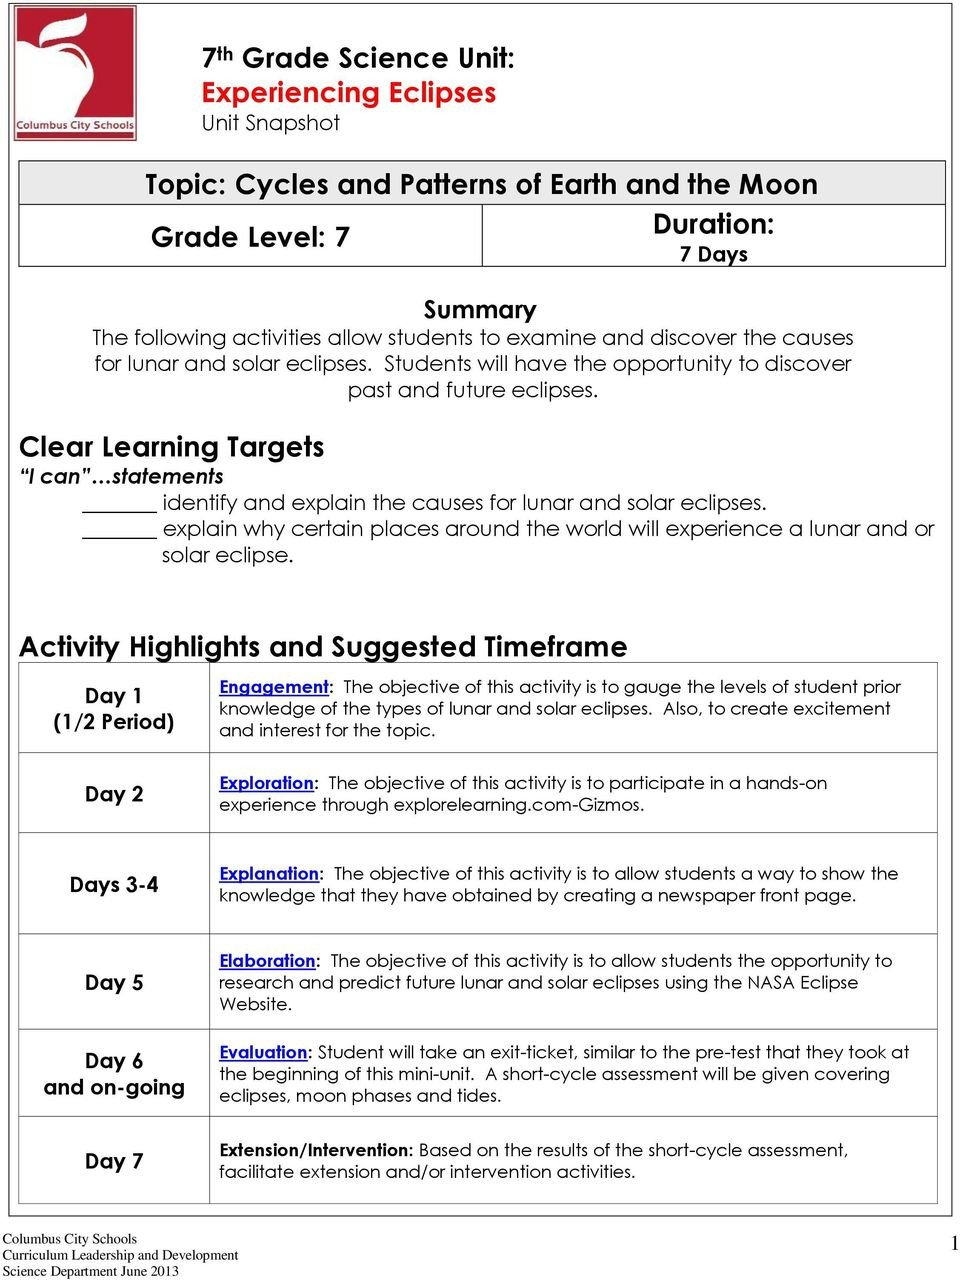 Eclipse Worksheets for Middle School topic Cycles and Patterns Of Earth and the Moon Grade Level